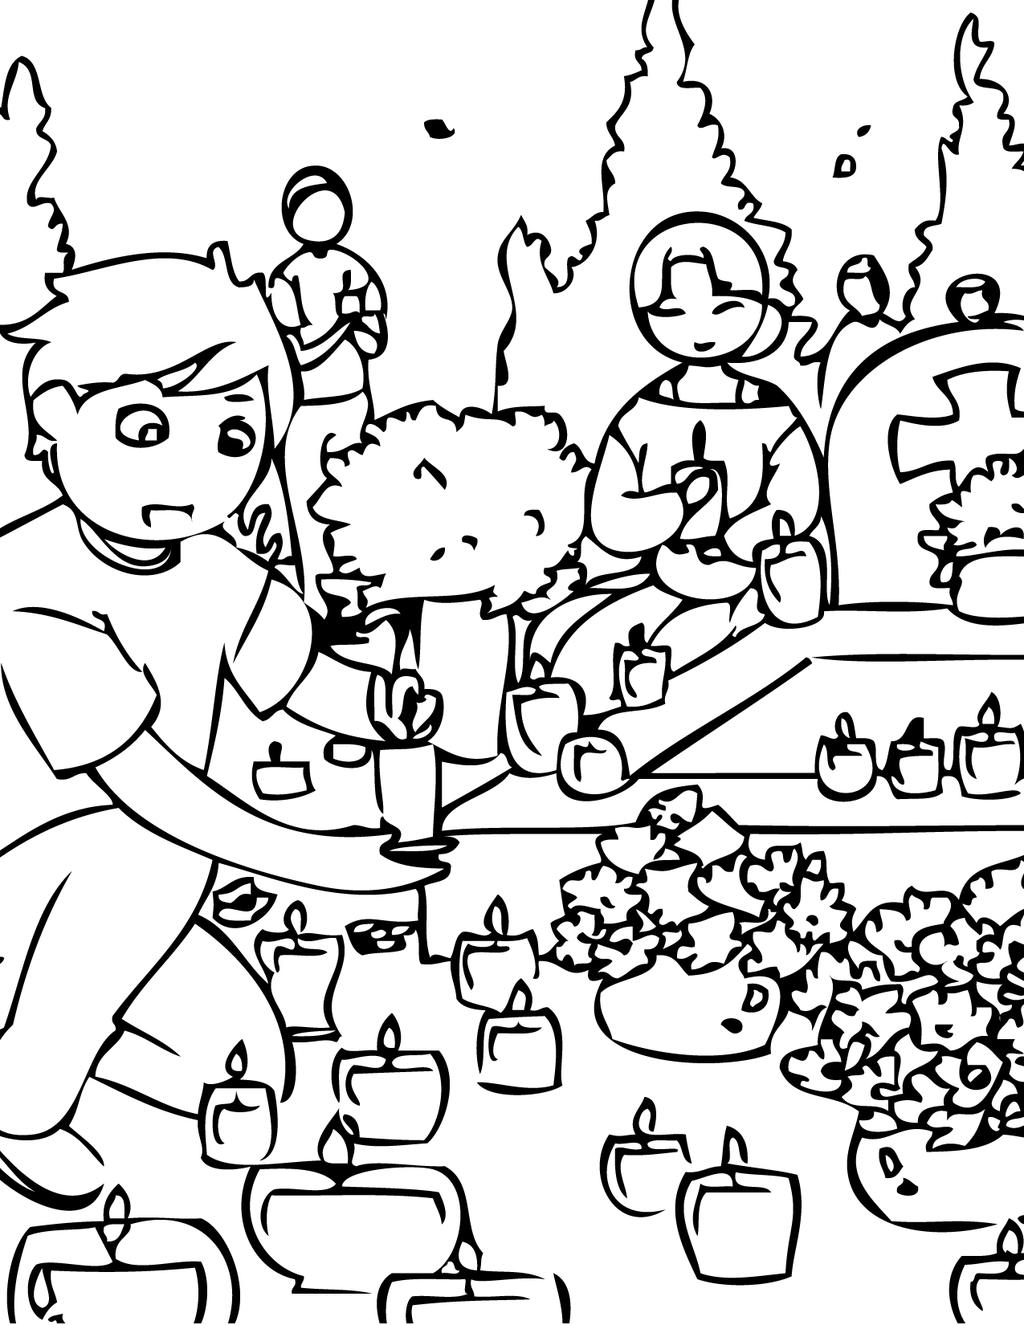 All Saints Day Coloring Pages 334 Linear Free Printable Coloring Pages